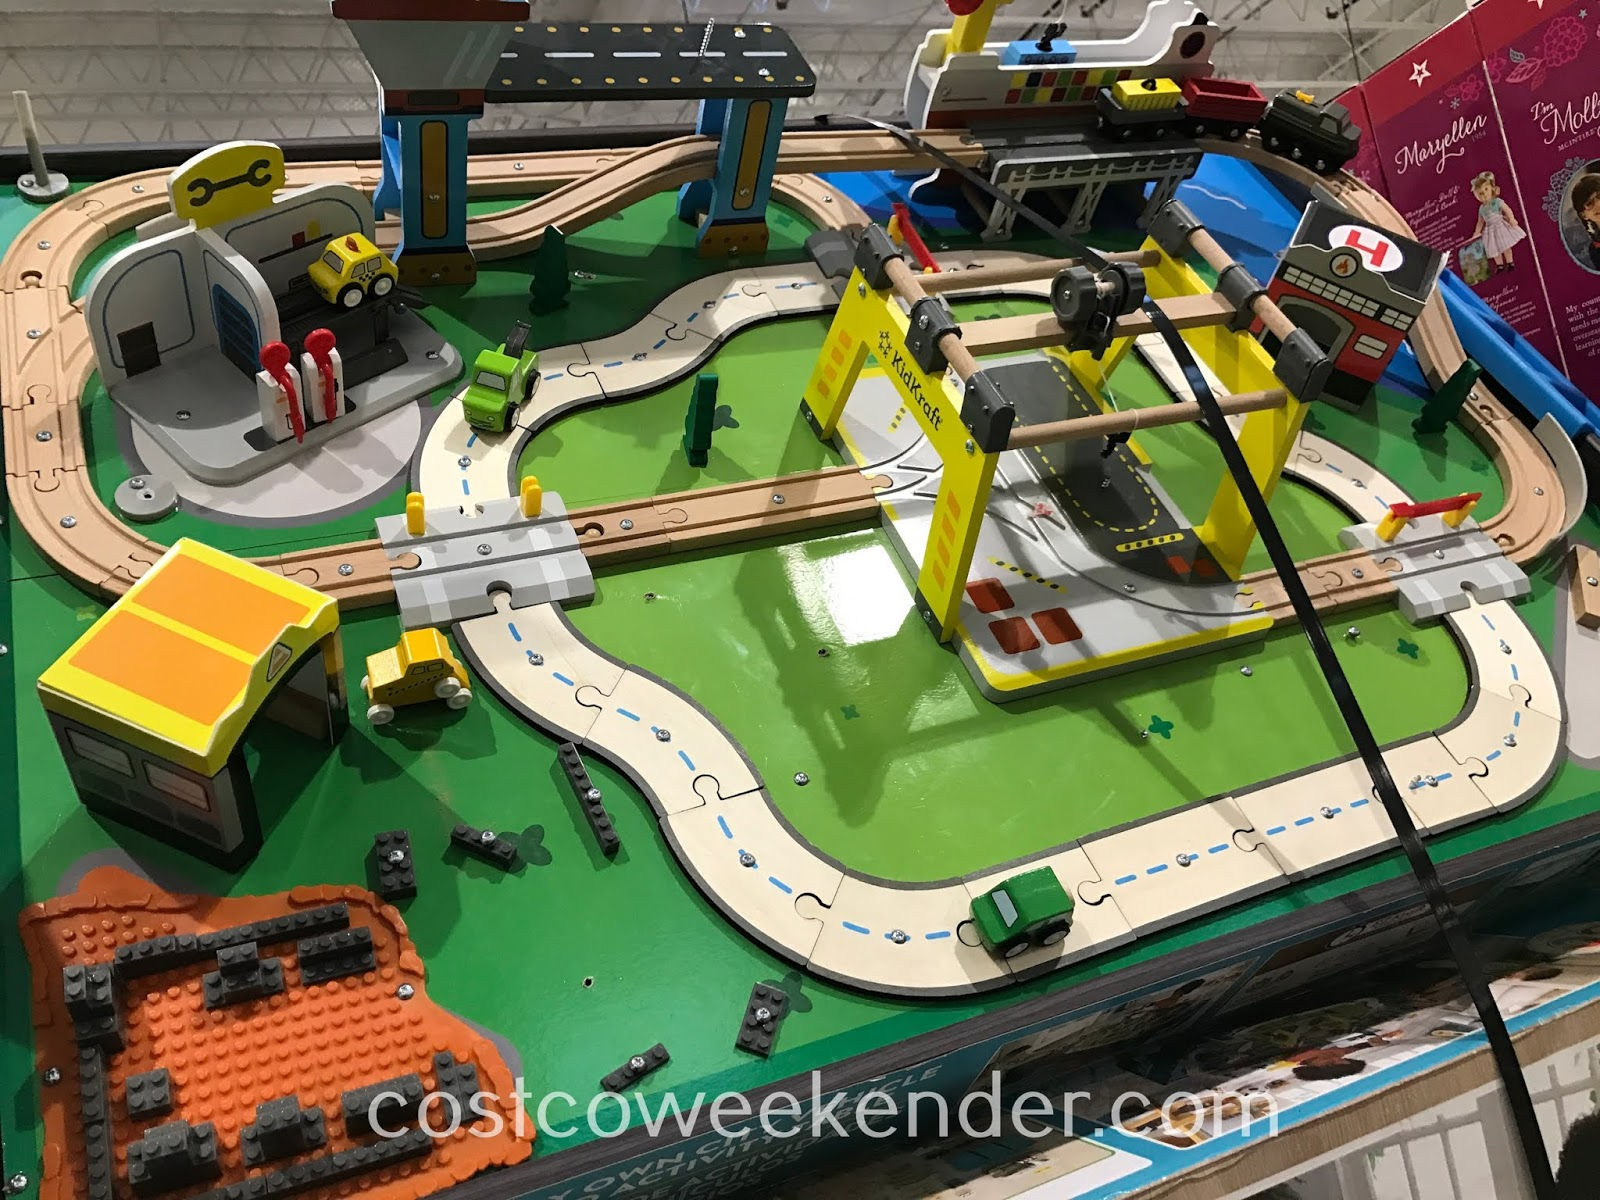 Give your child a place to play with Legos, trains, and toy cars with the KidKraft My Own City Vehicle and Activity Table